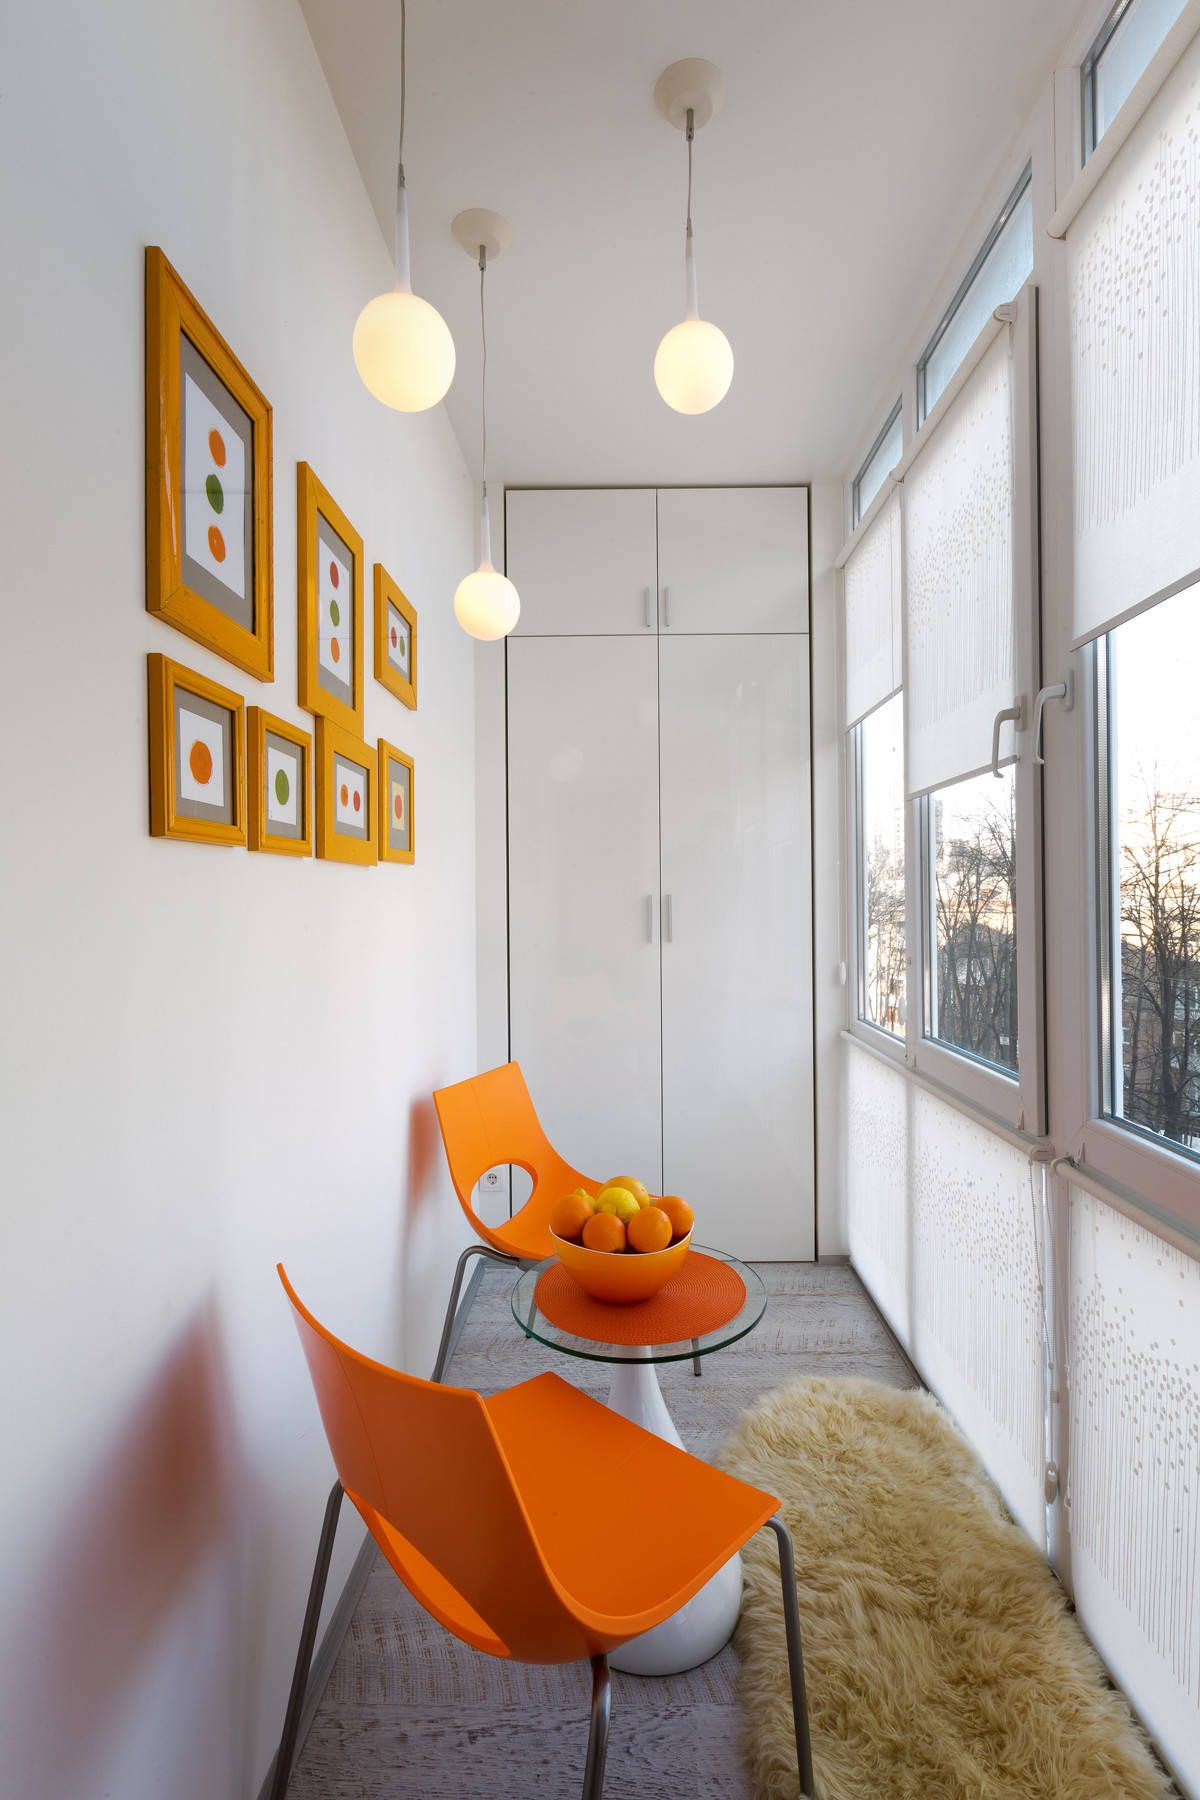 Wall art frames and chairs bring pops of orange to this small contemporary sunroom